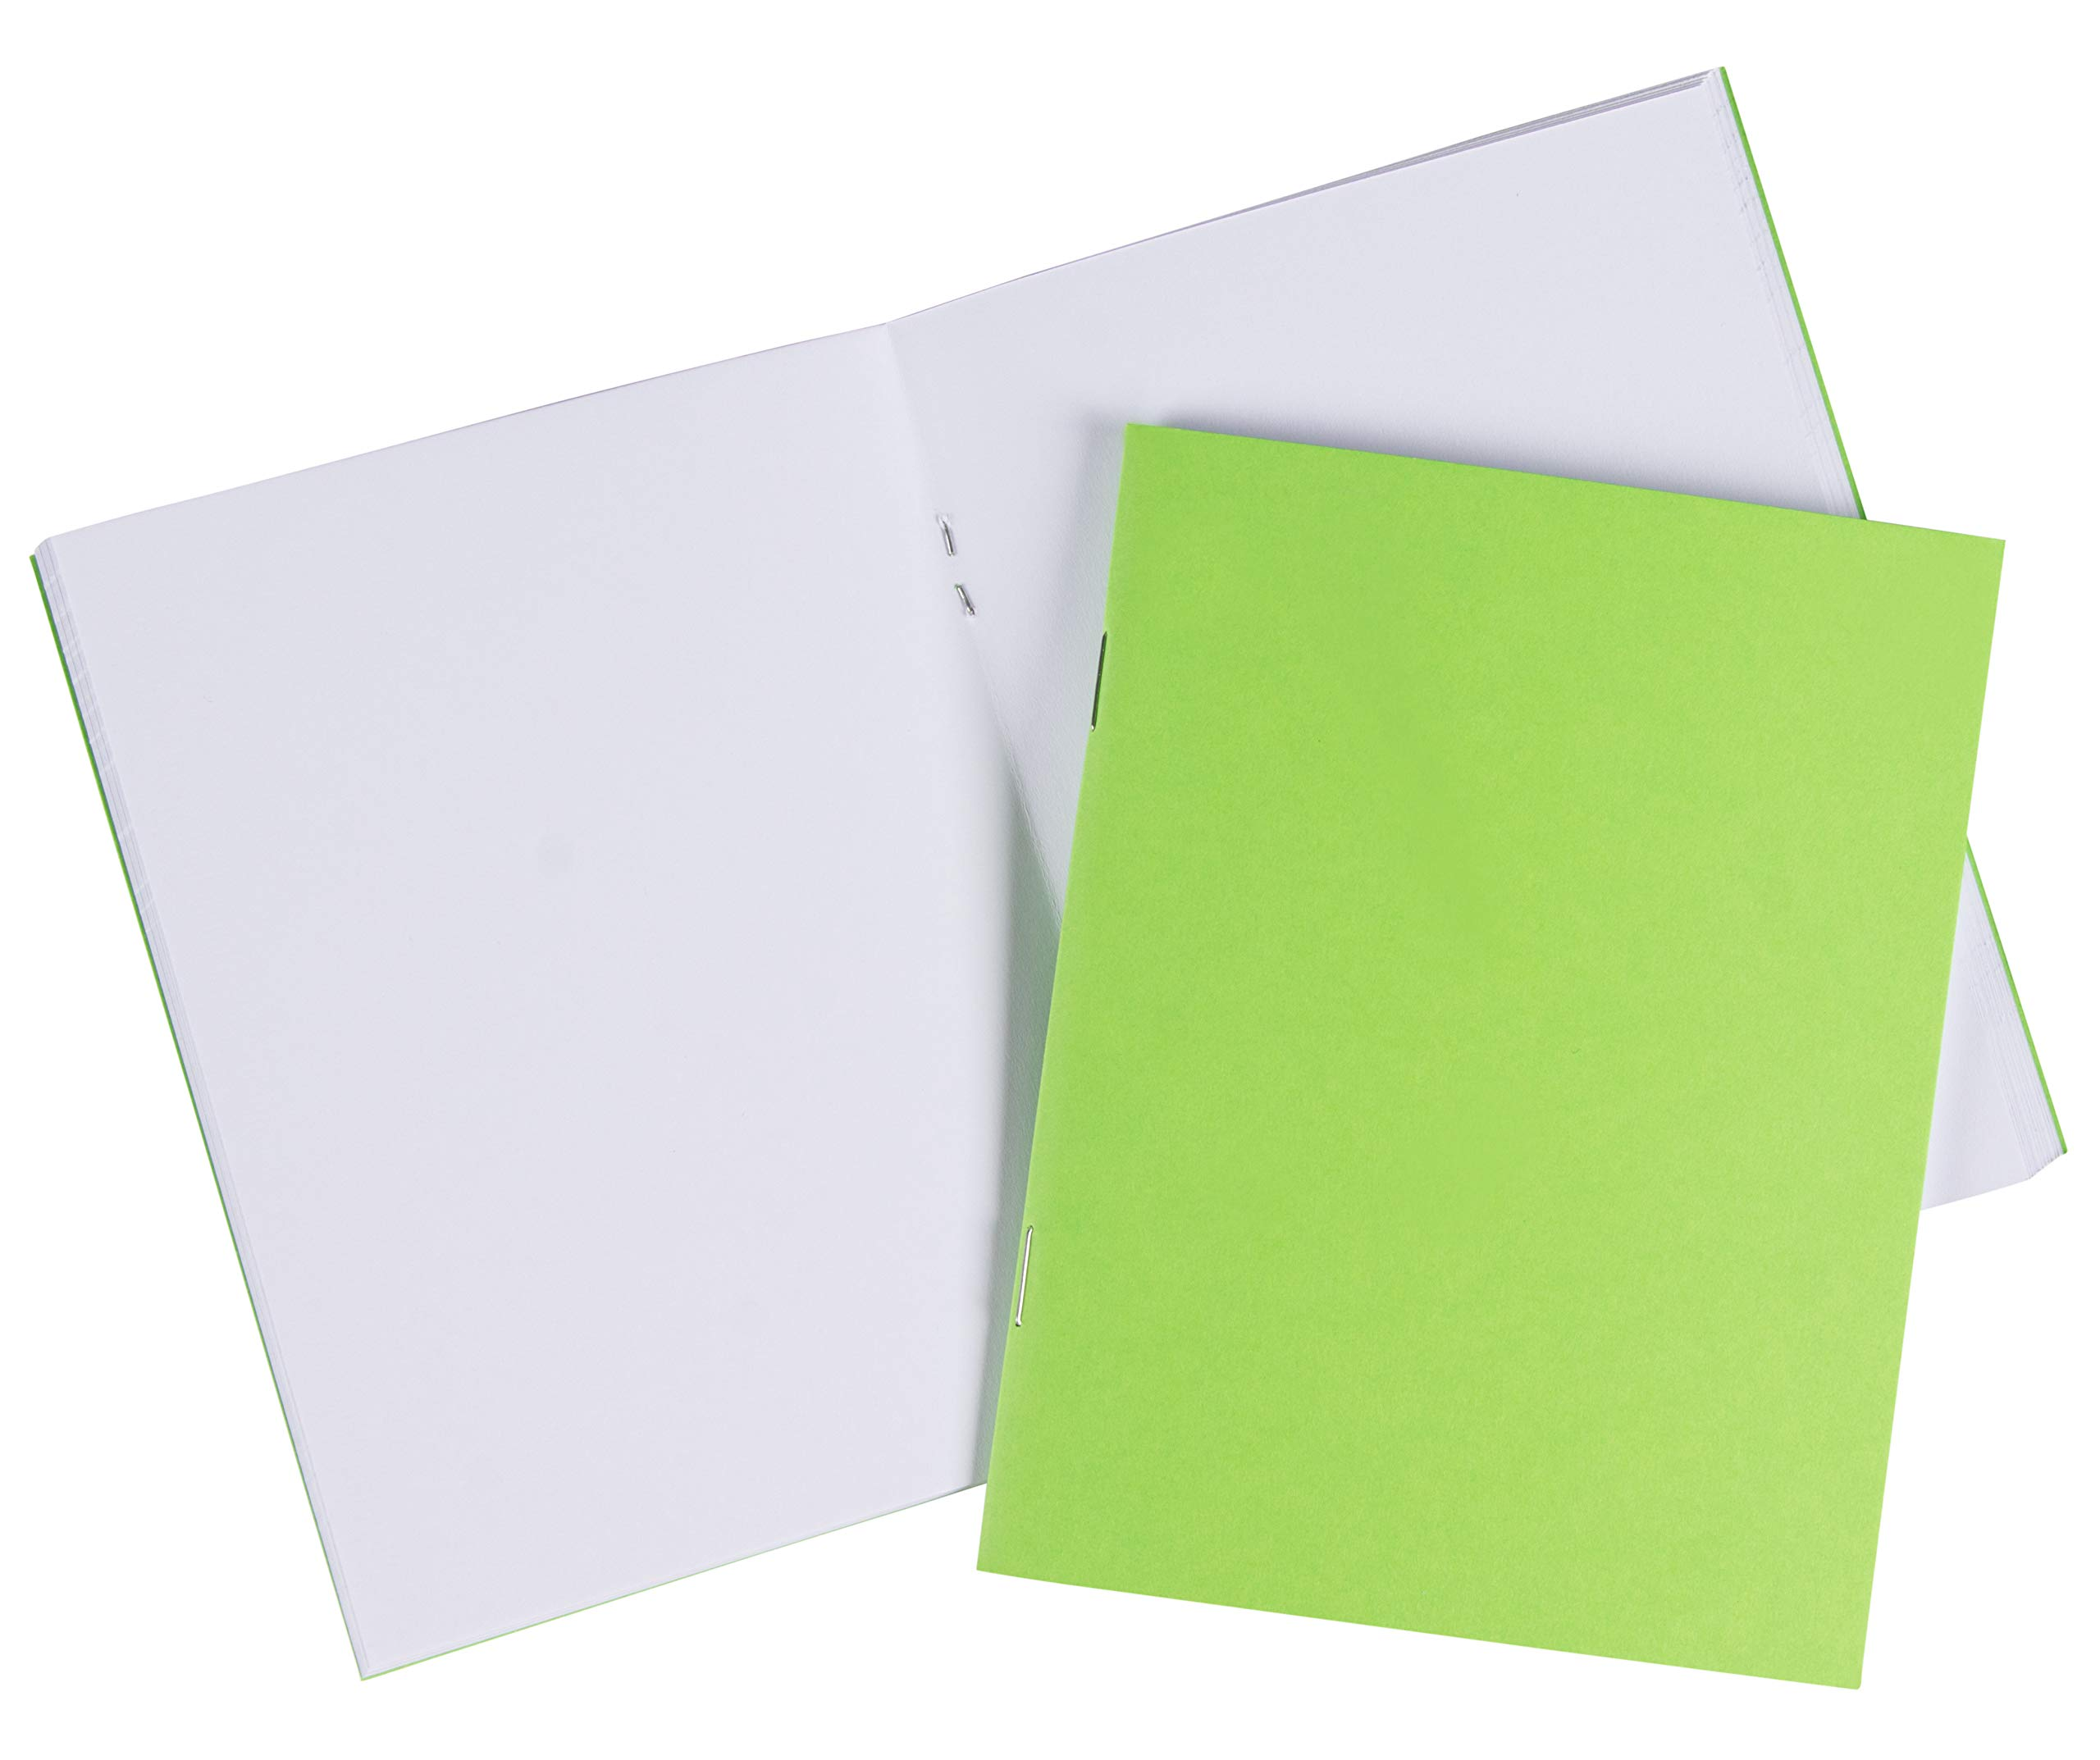 Blank Book - 48-Pack Colorful Notebooks, Unlined Plain Travel Journals for Students, Kids Diaries, Creative Writing Projects, 6 Assorted Colors, 4.25 x 5.5 Inches, 24 Sheets by Paper Junkie (Image #4)